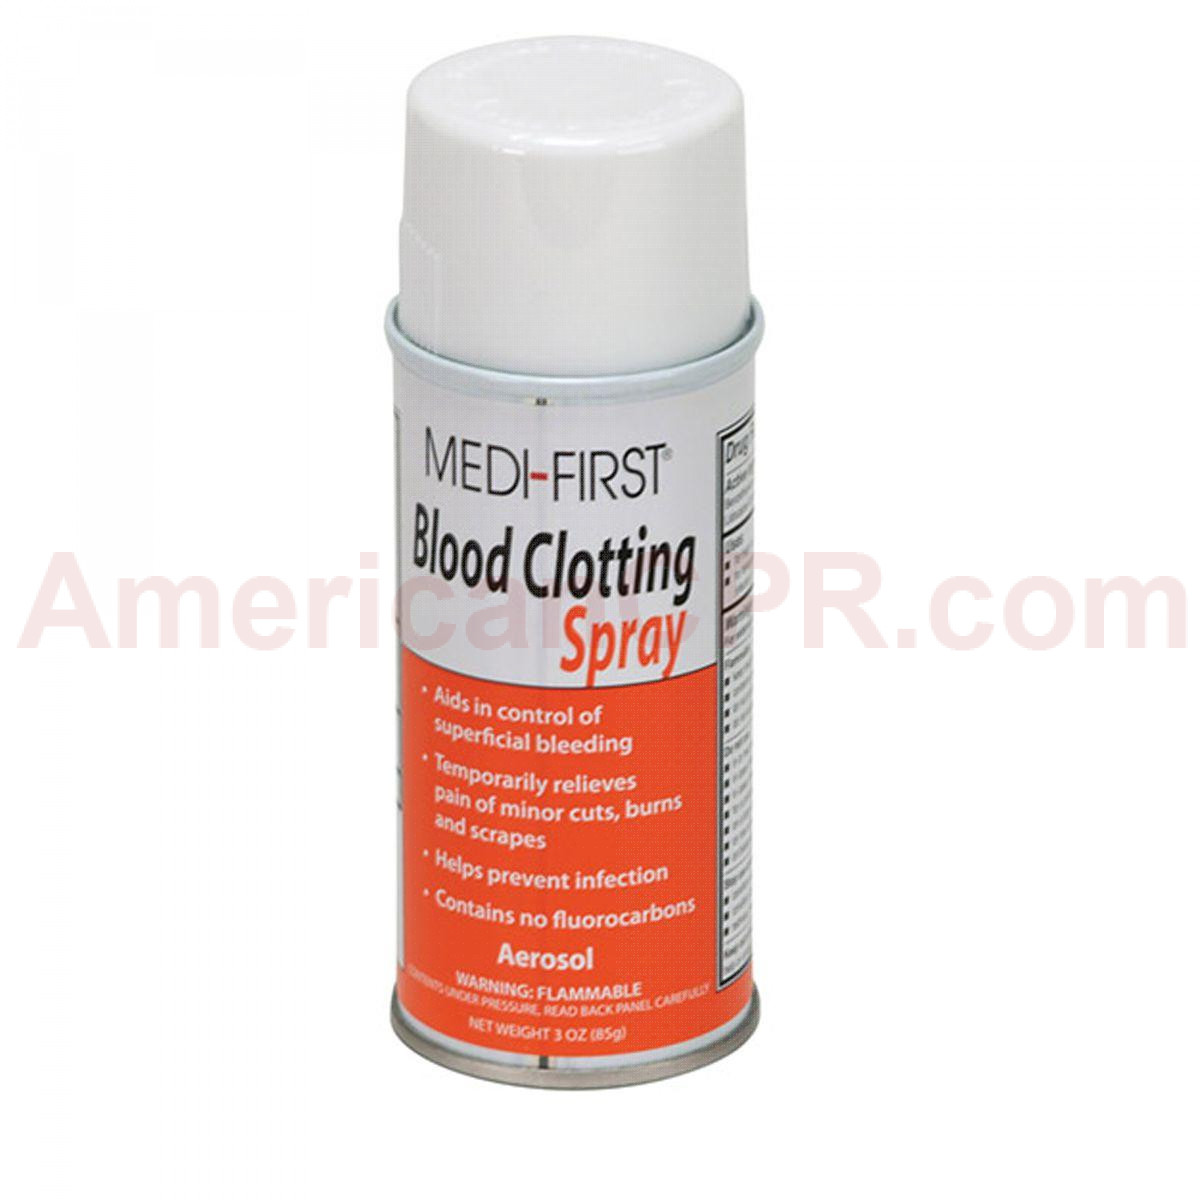 Blood Clotting Spray, 3 oz. Aerosol - 1 Each - Pac-Kit